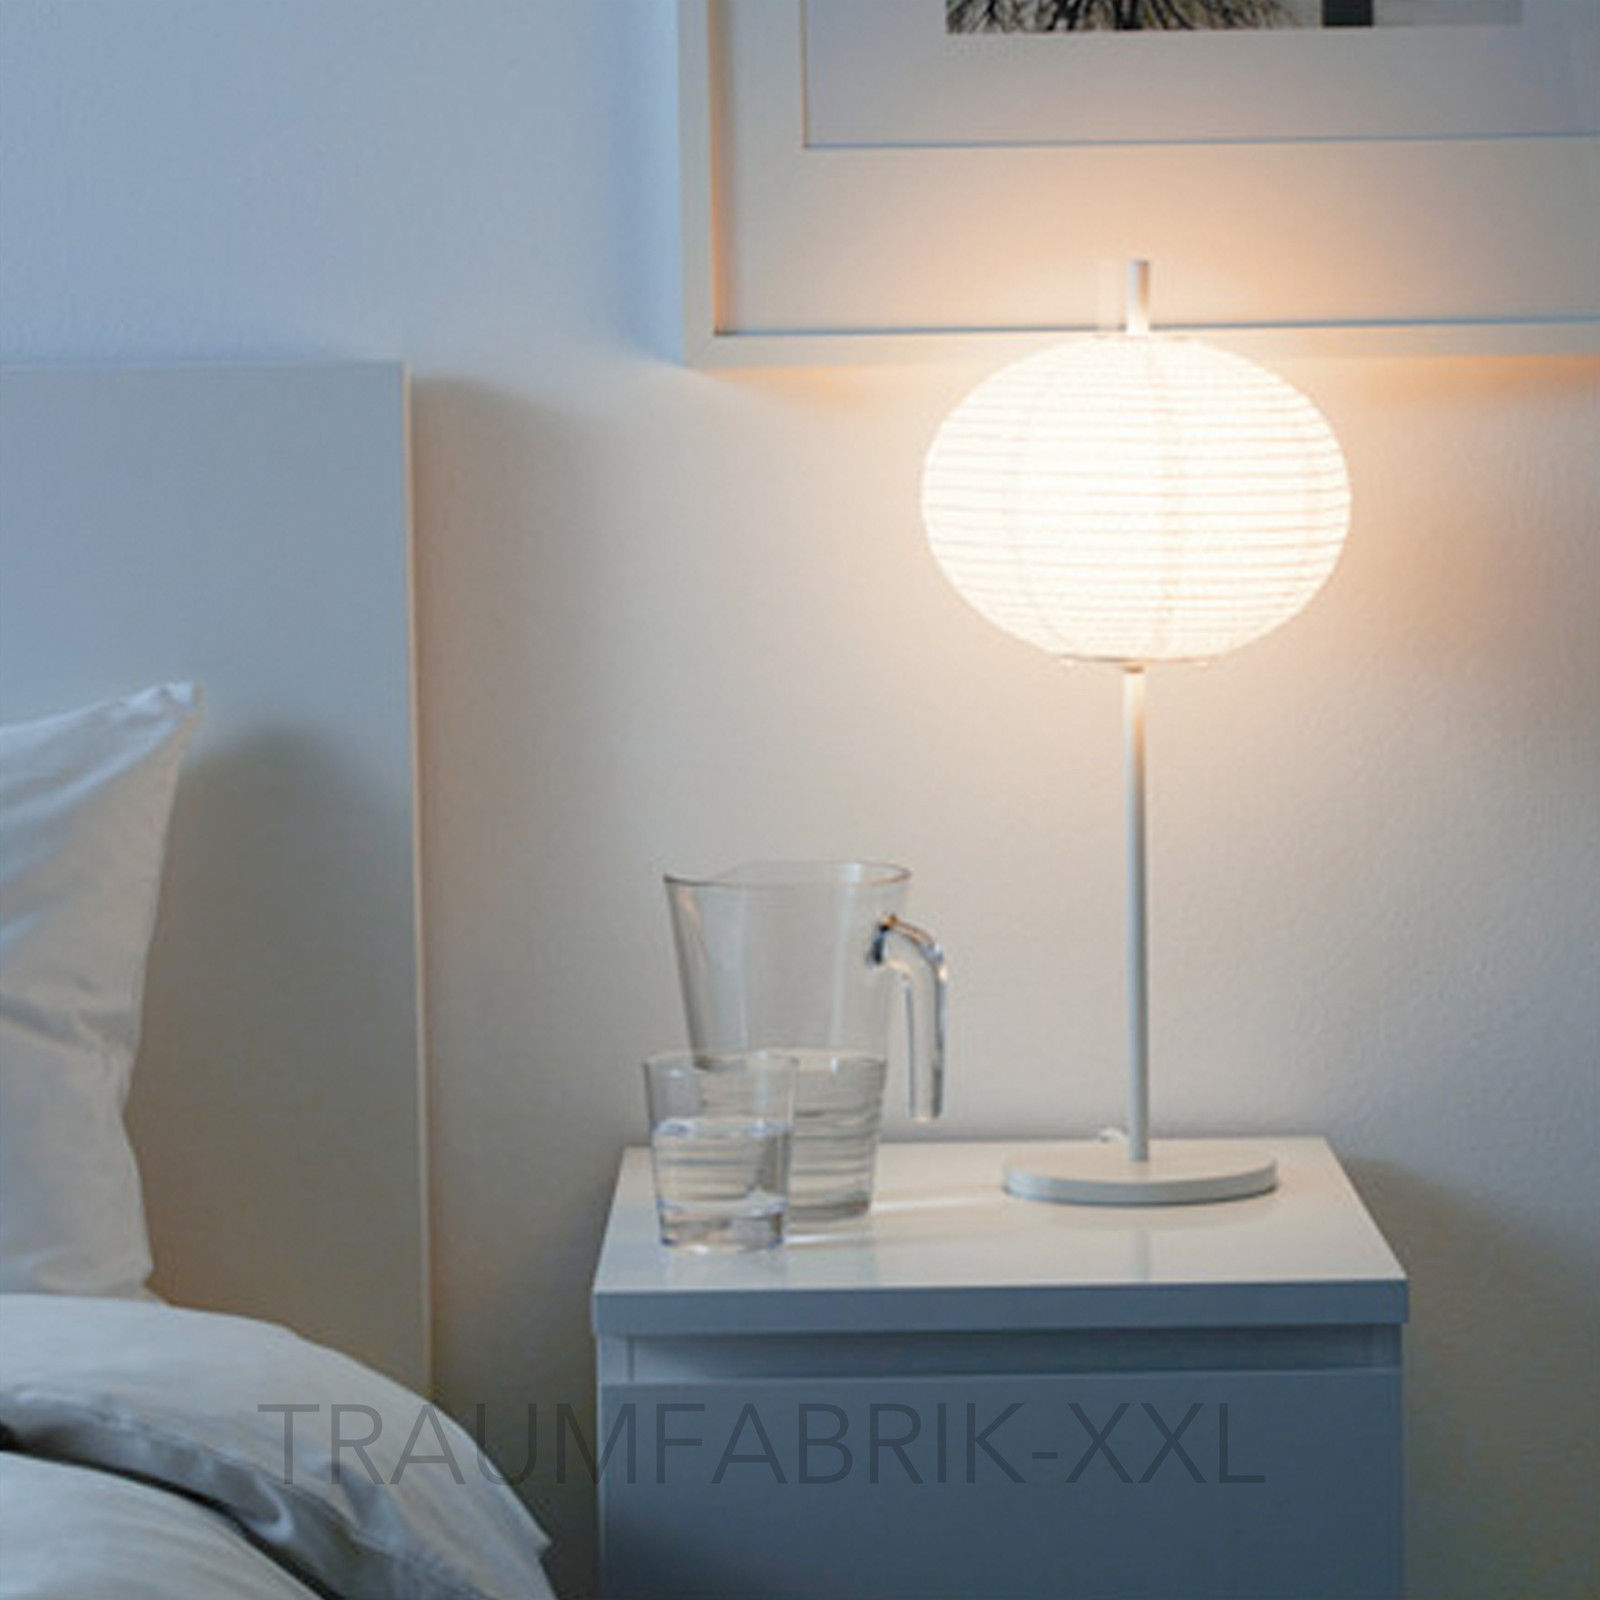 xxl lampen great ikea solleftea lampe with xxl lampen interesting xxl lampen with xxl lampen. Black Bedroom Furniture Sets. Home Design Ideas